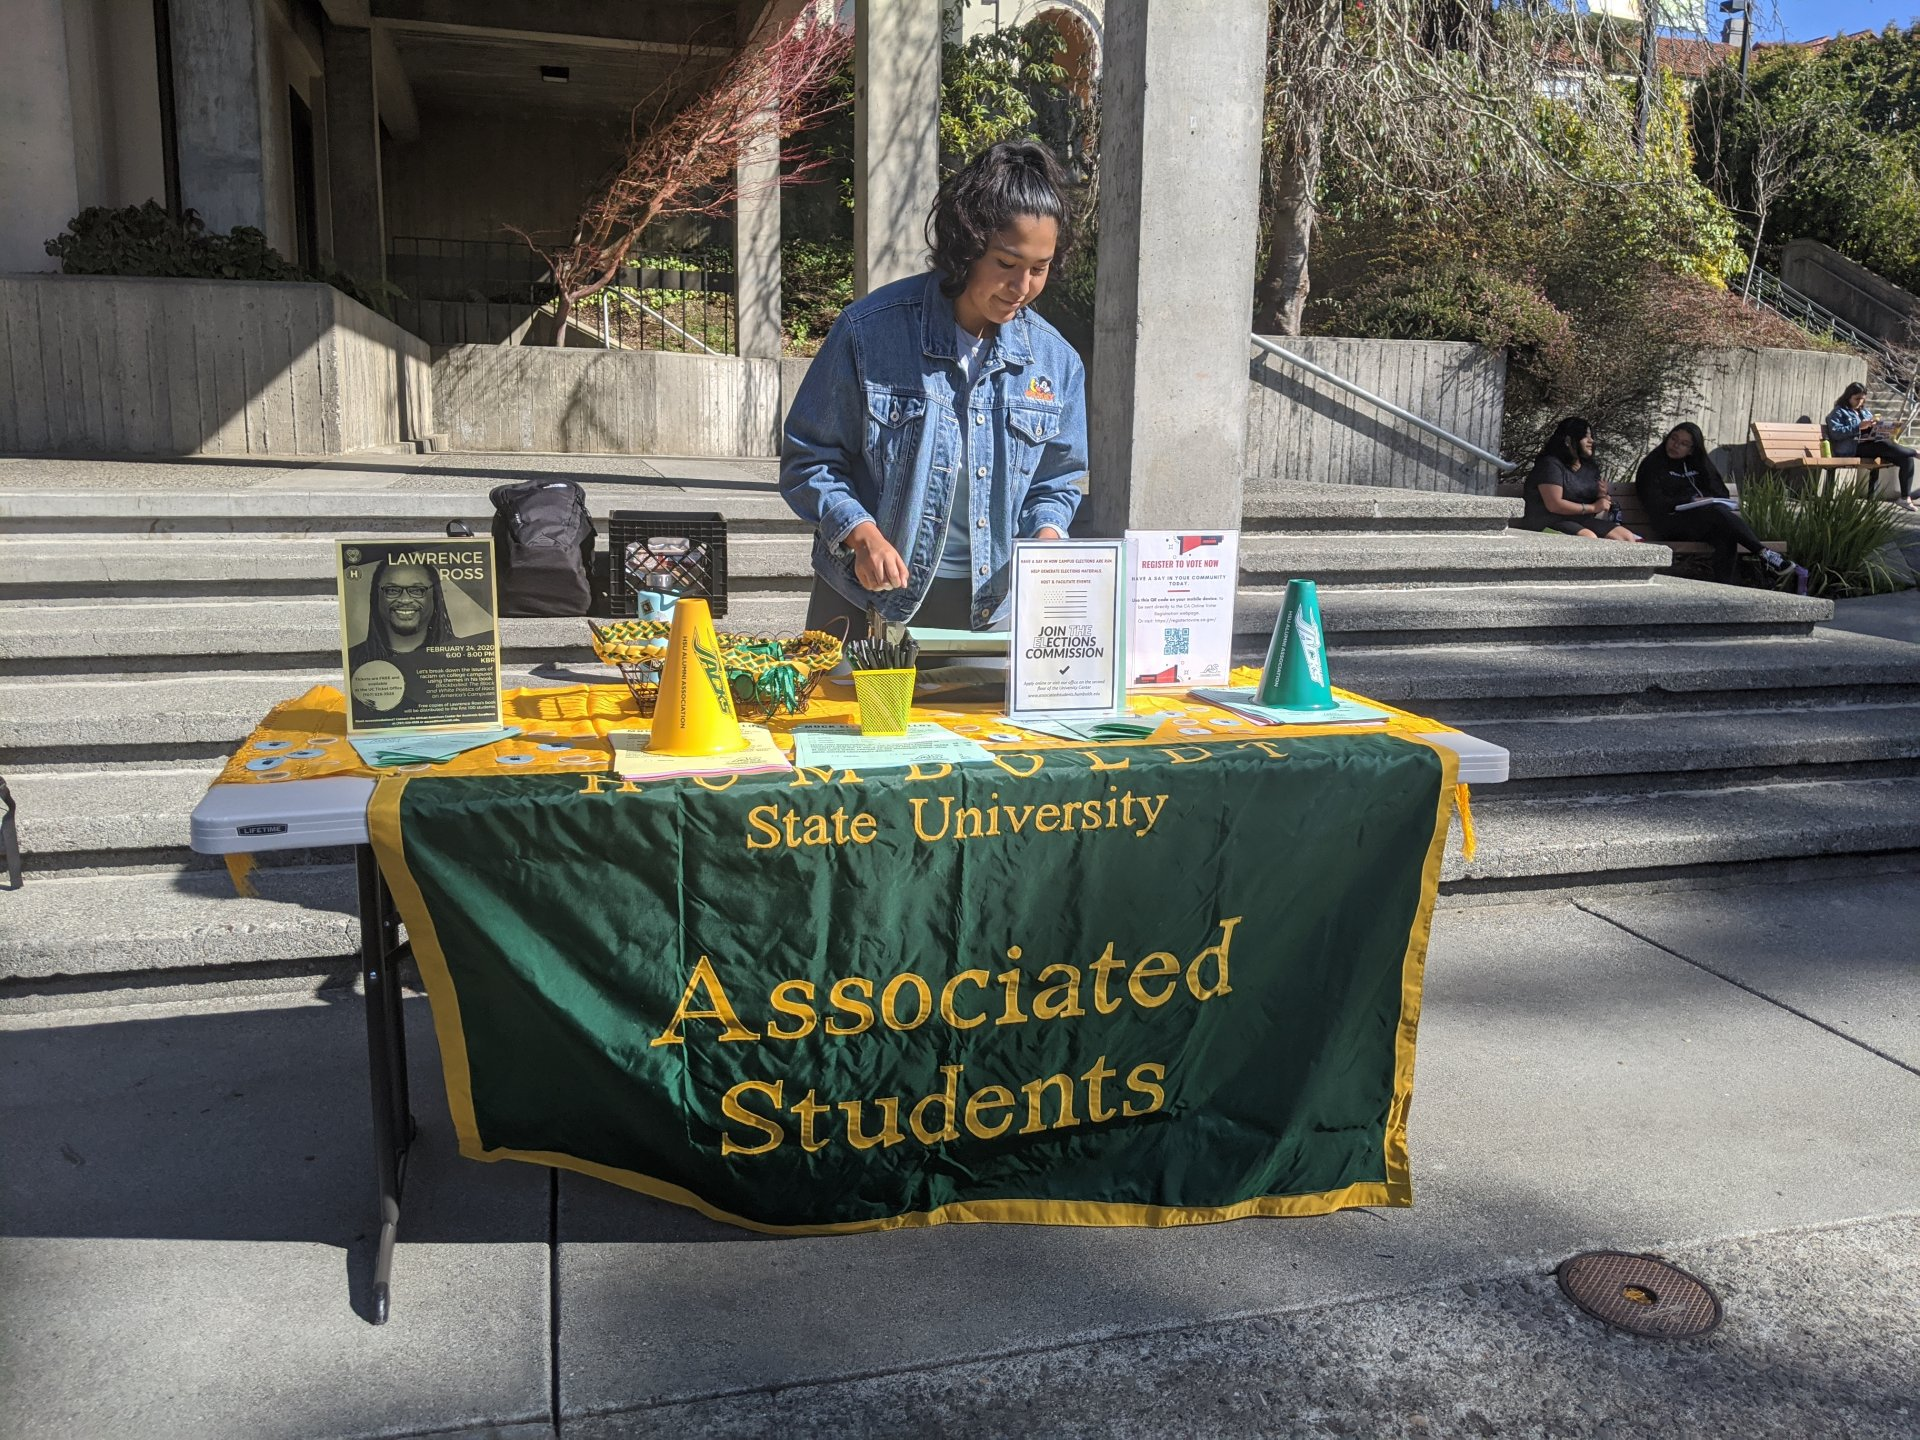 Associated Students Public Relations Officer Cassie Caudillo attends to the mock election table in the UC Quad on Feb. 24. | Photo by Sam Papavasiliou